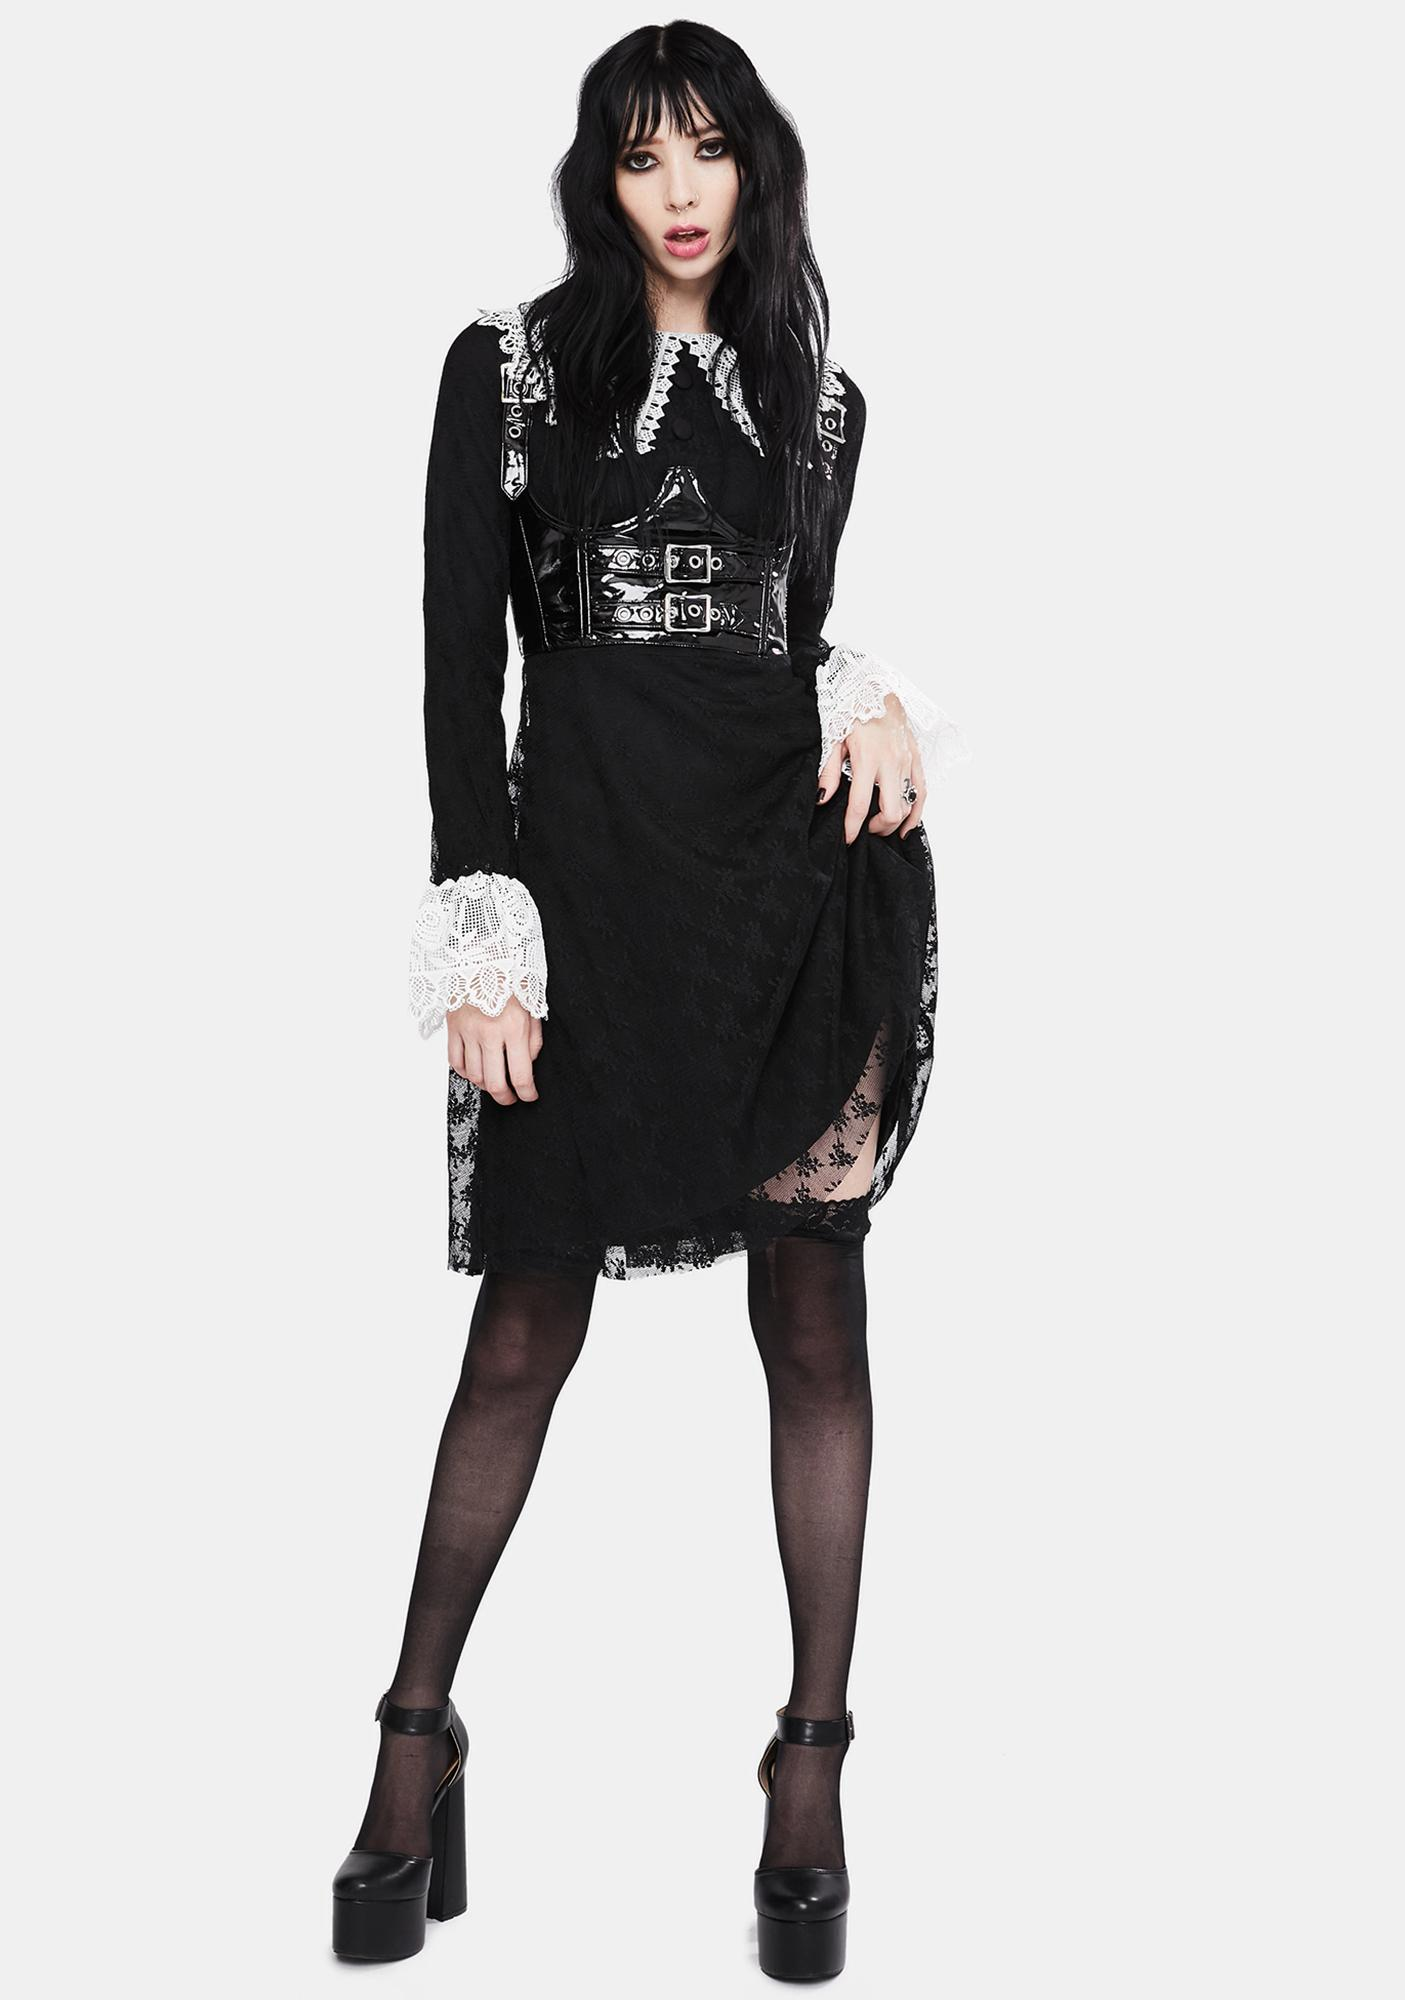 Jawbreaker Black Weird Sisters Lace Fit And Flare Dress